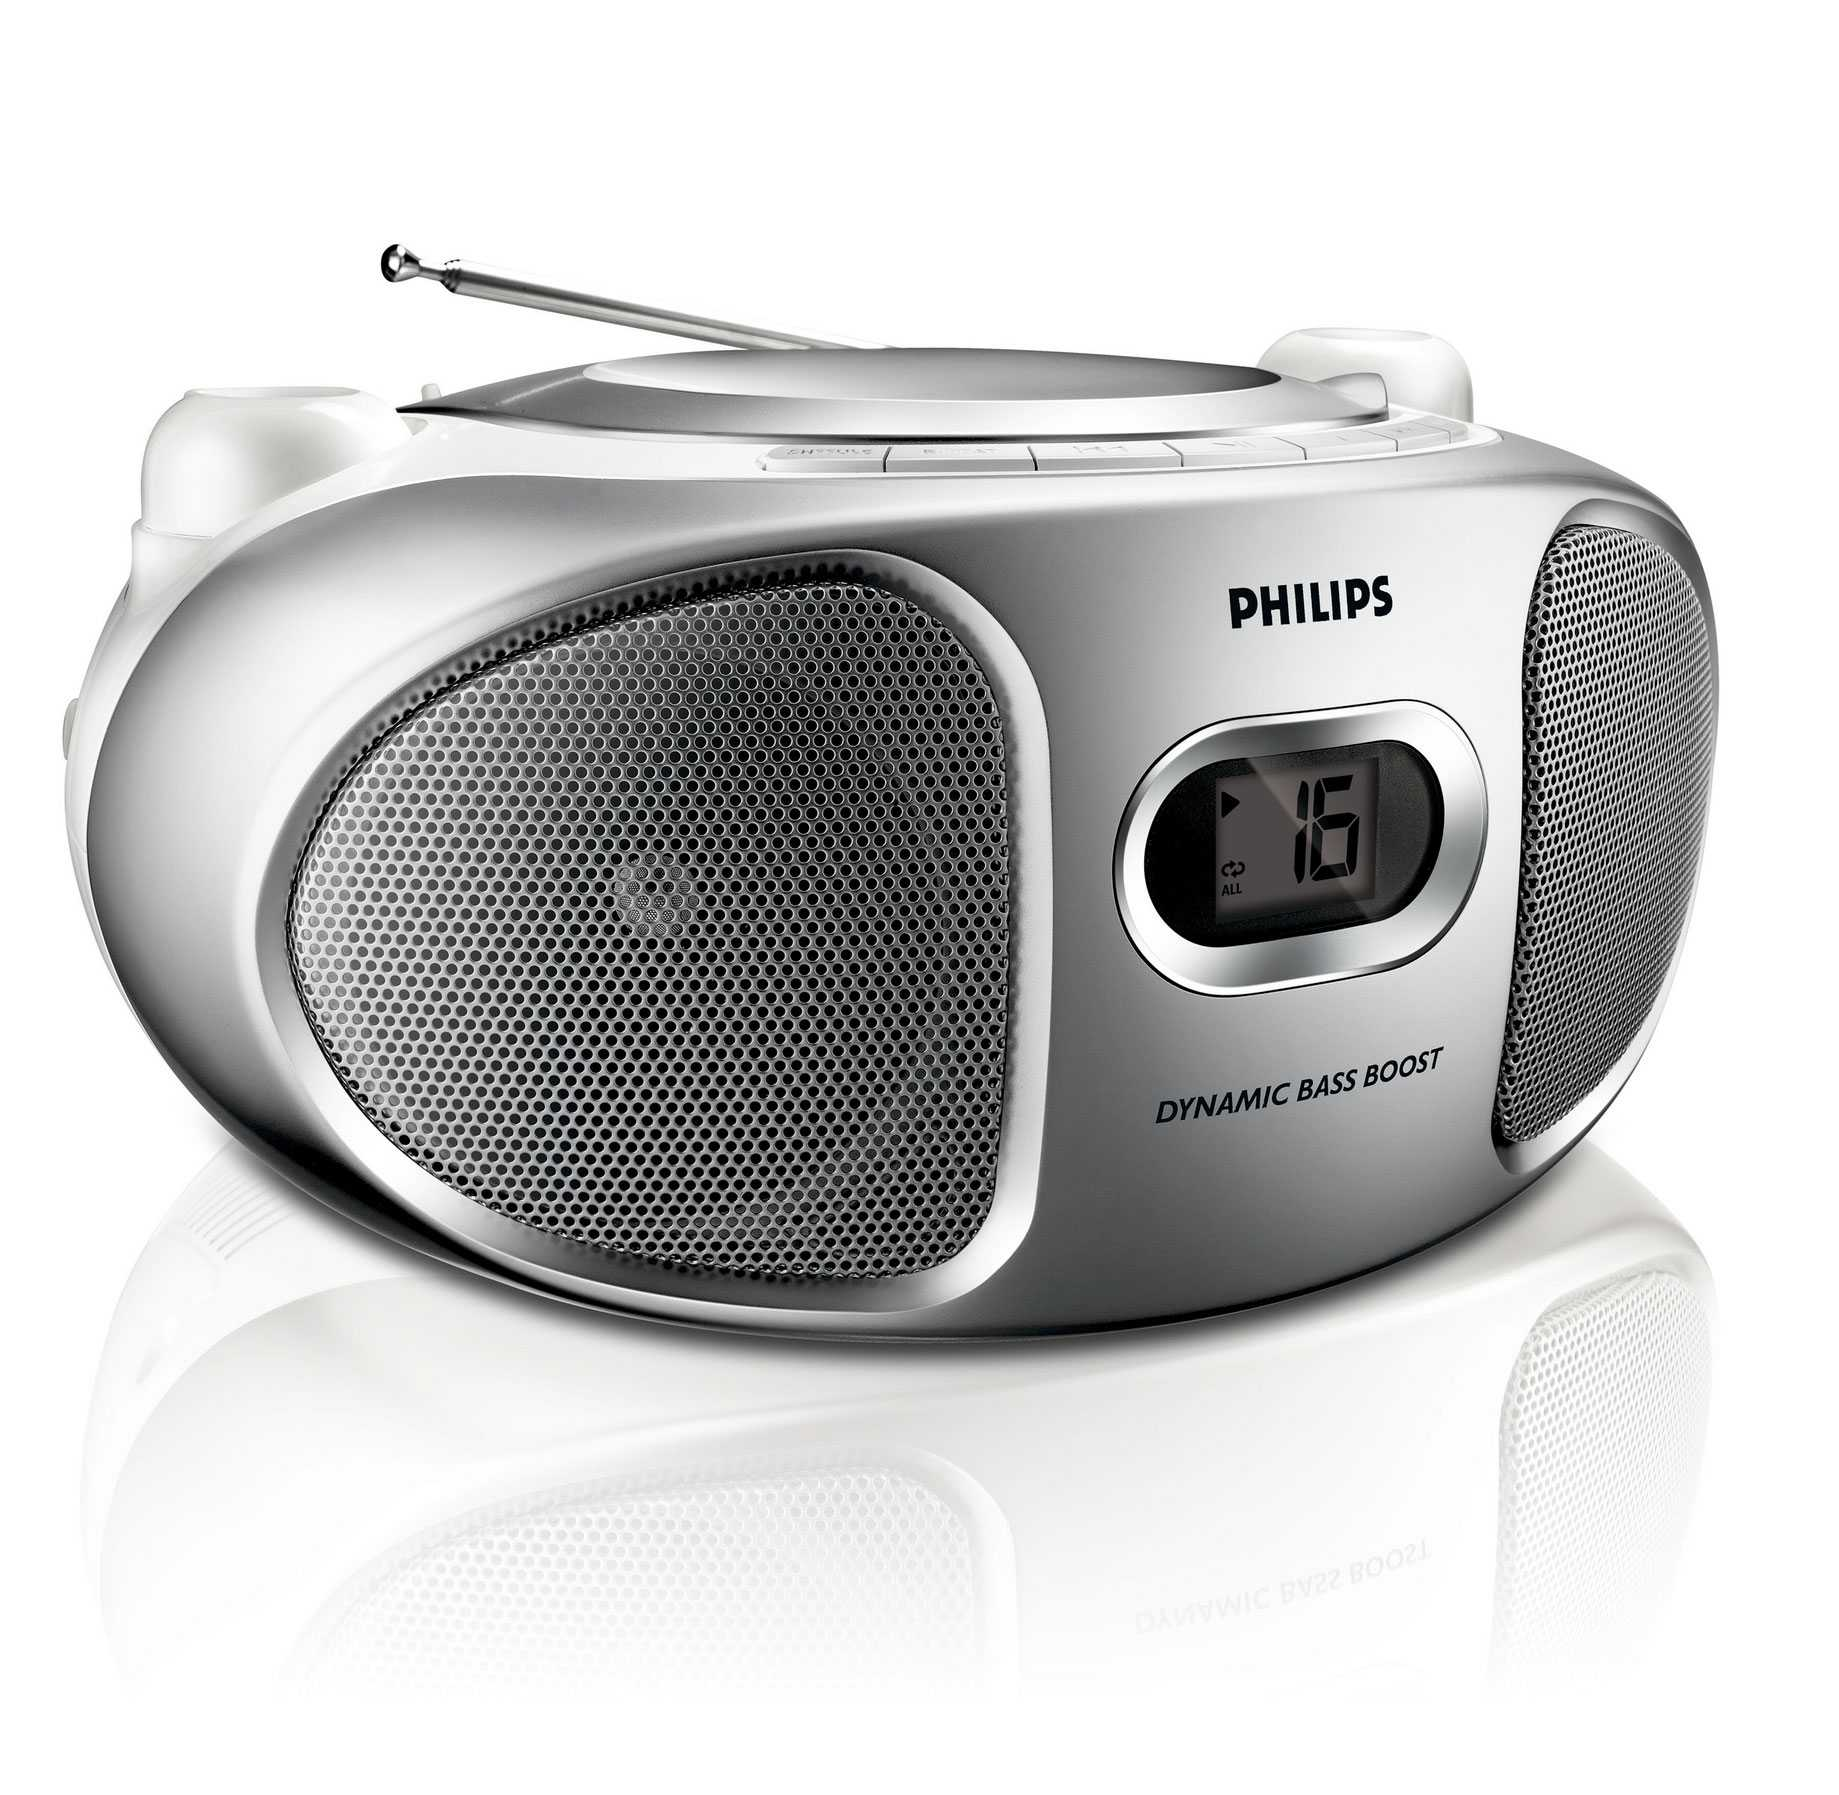 philips az1025 portable cd player radio. Black Bedroom Furniture Sets. Home Design Ideas